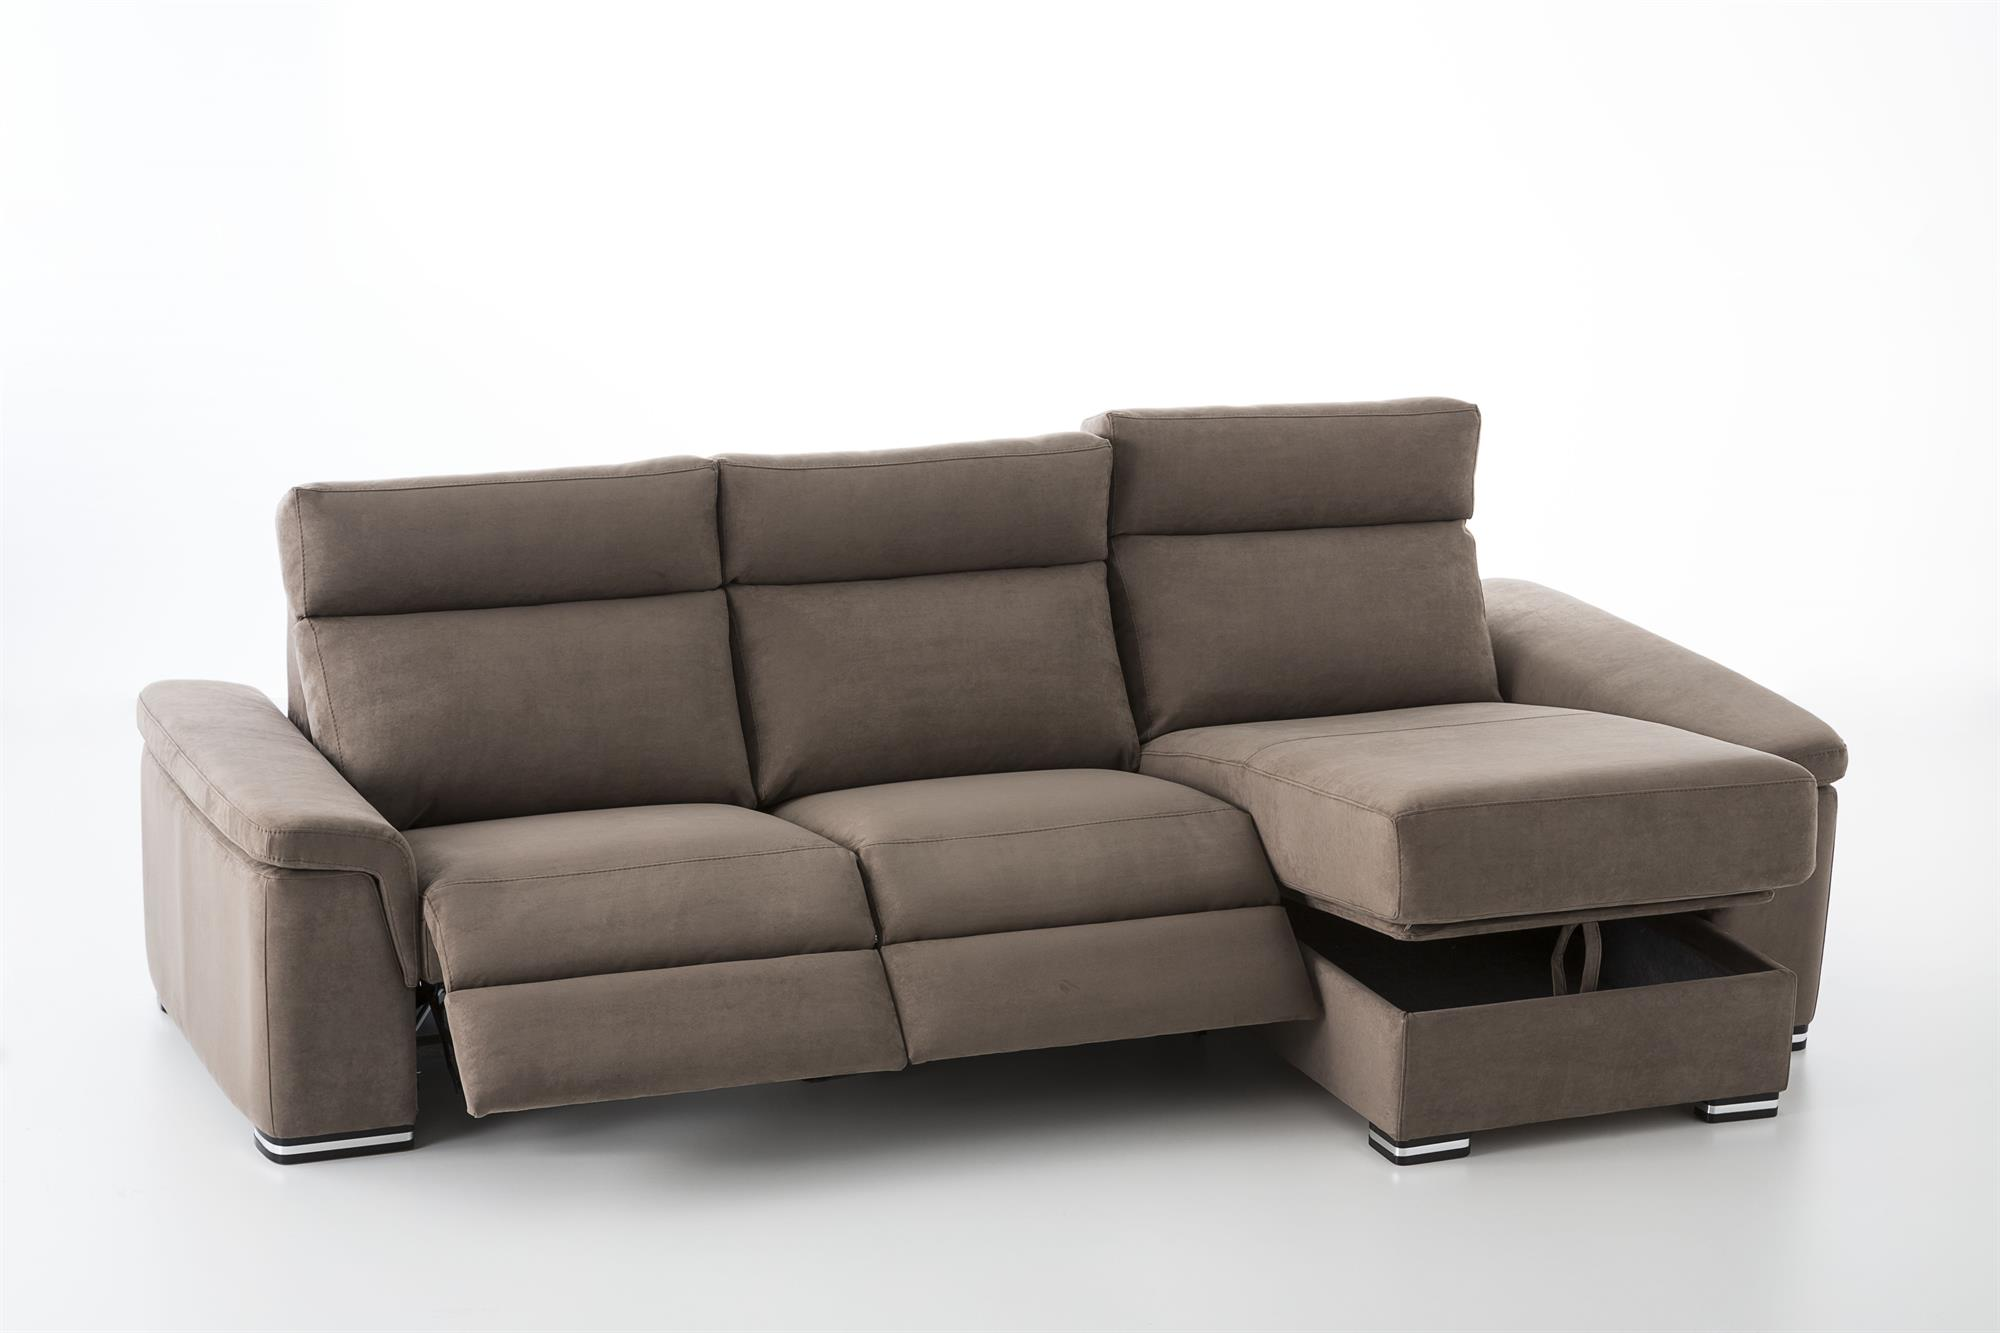 Gala Leather 3 Seater Sofa with Ottoman.